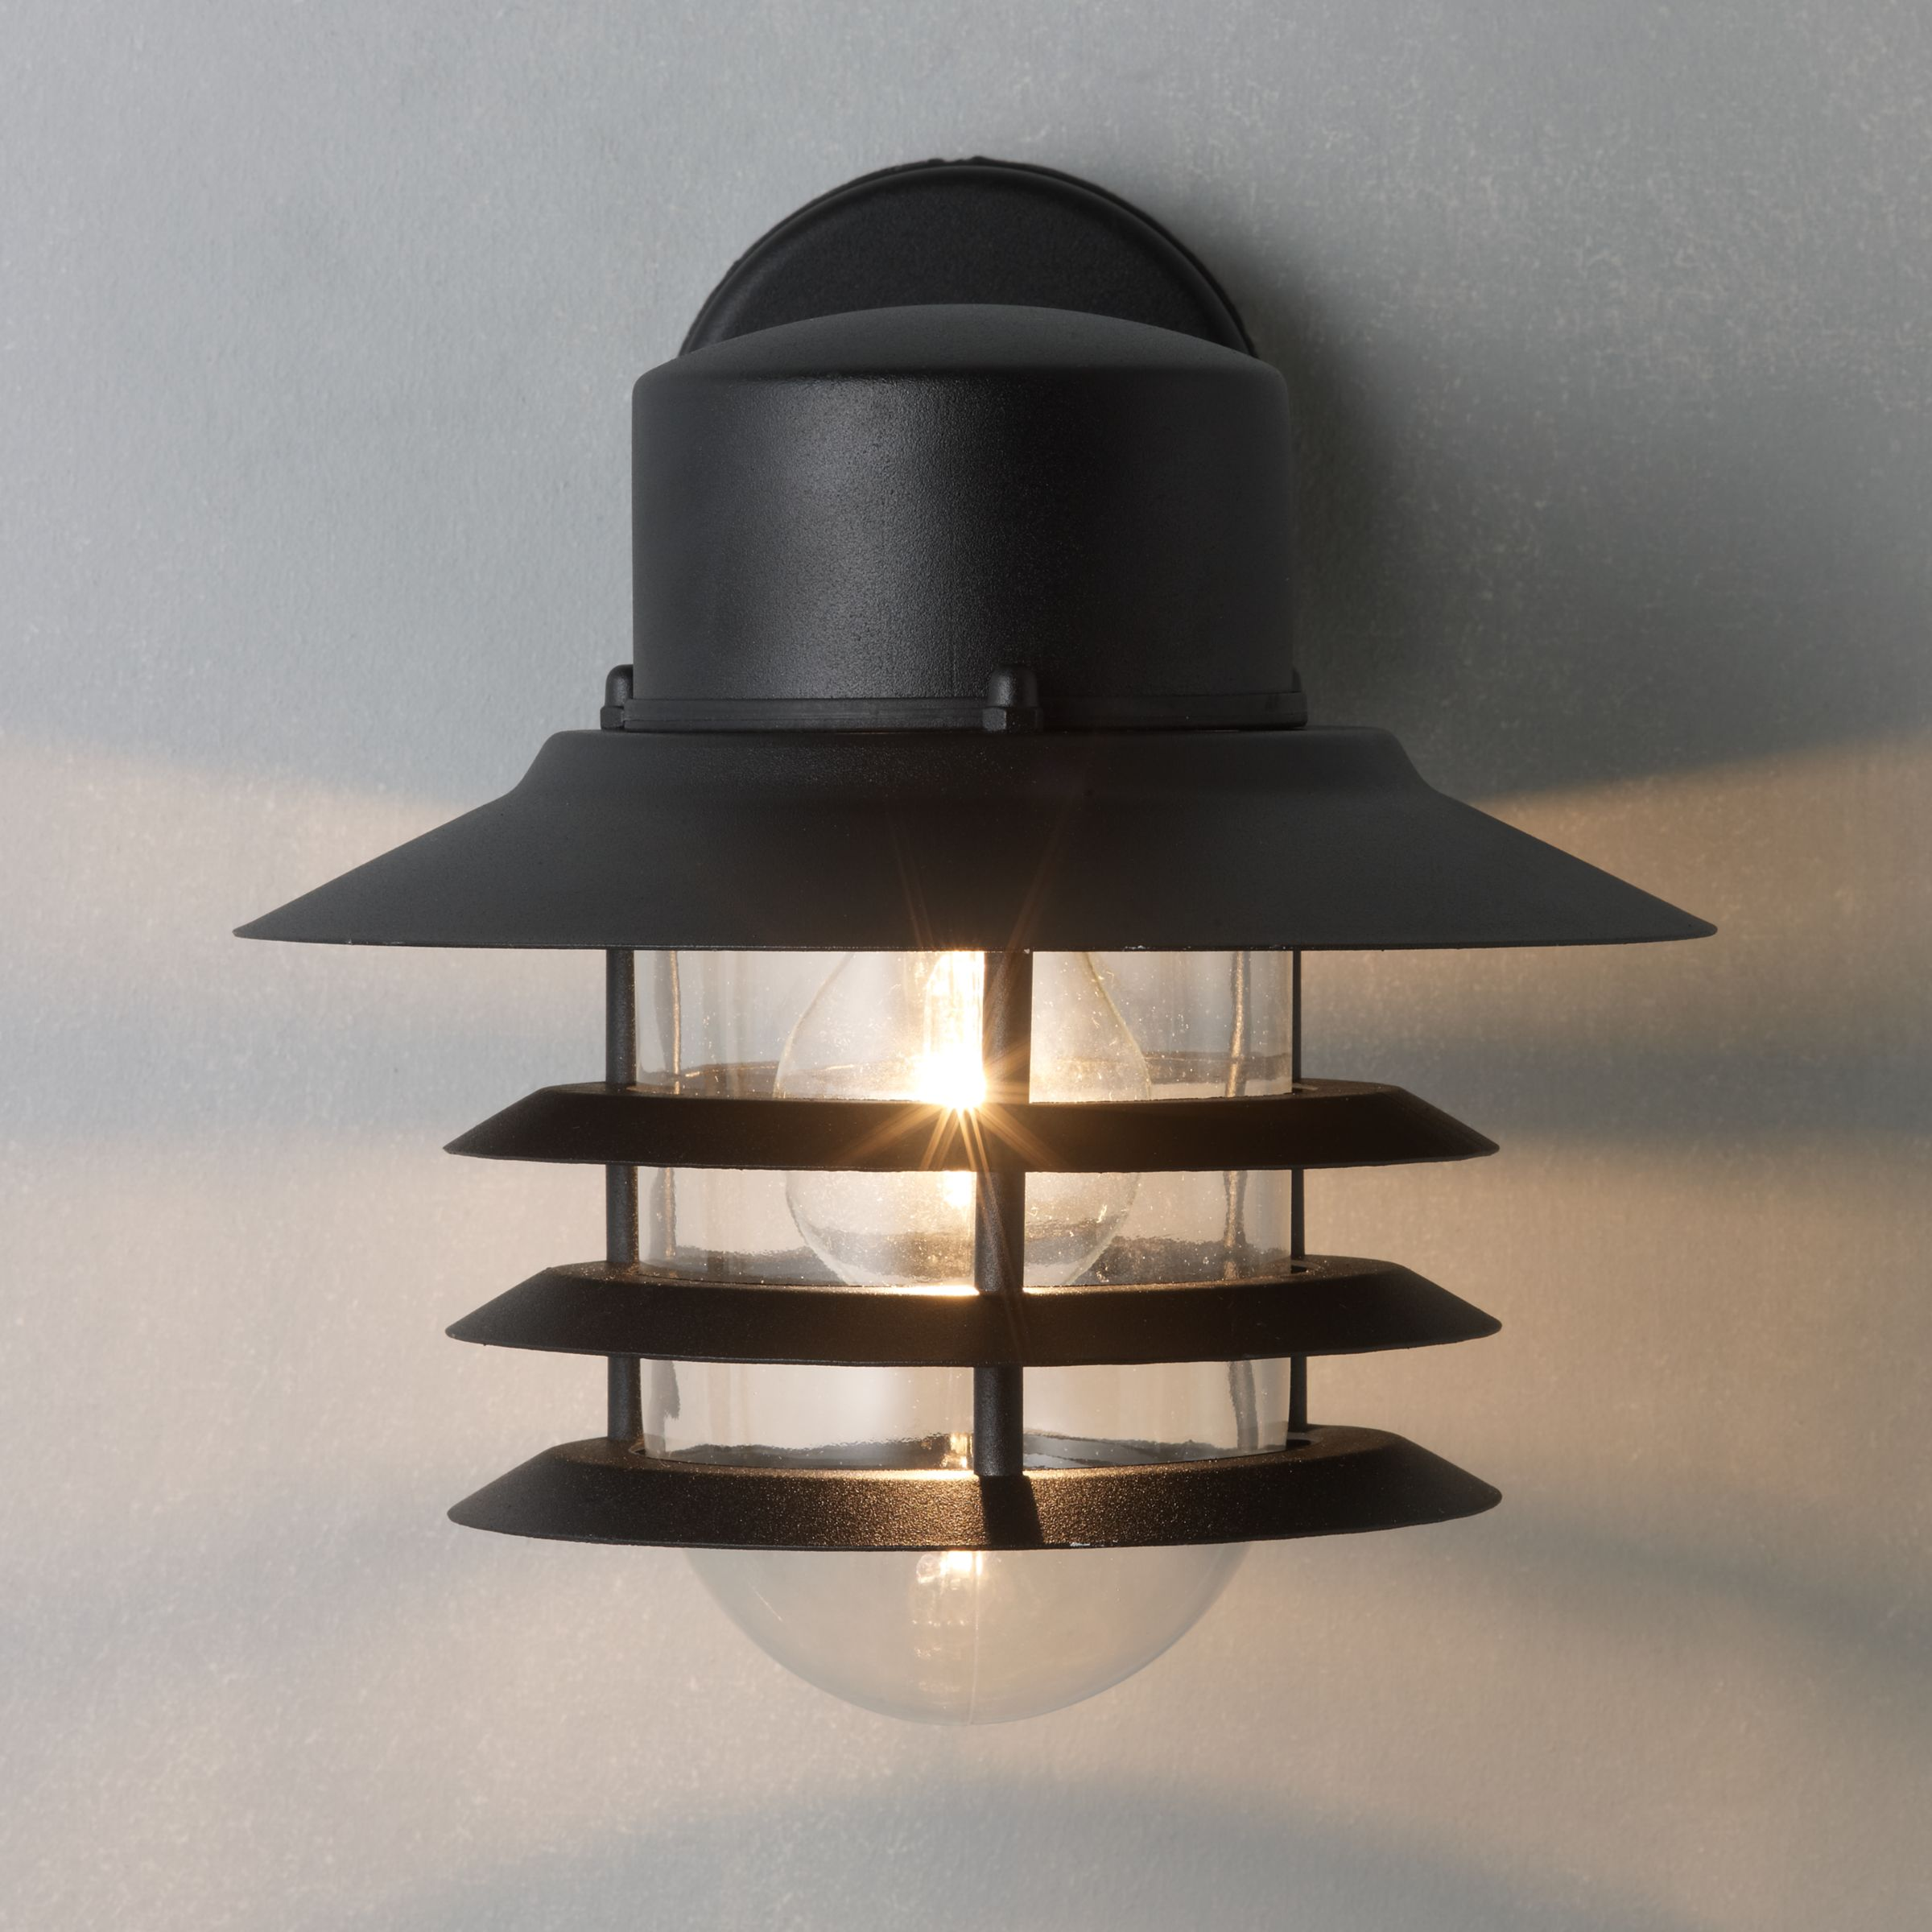 Nordlux Nordlux Vejers Outdoor Wall Lantern